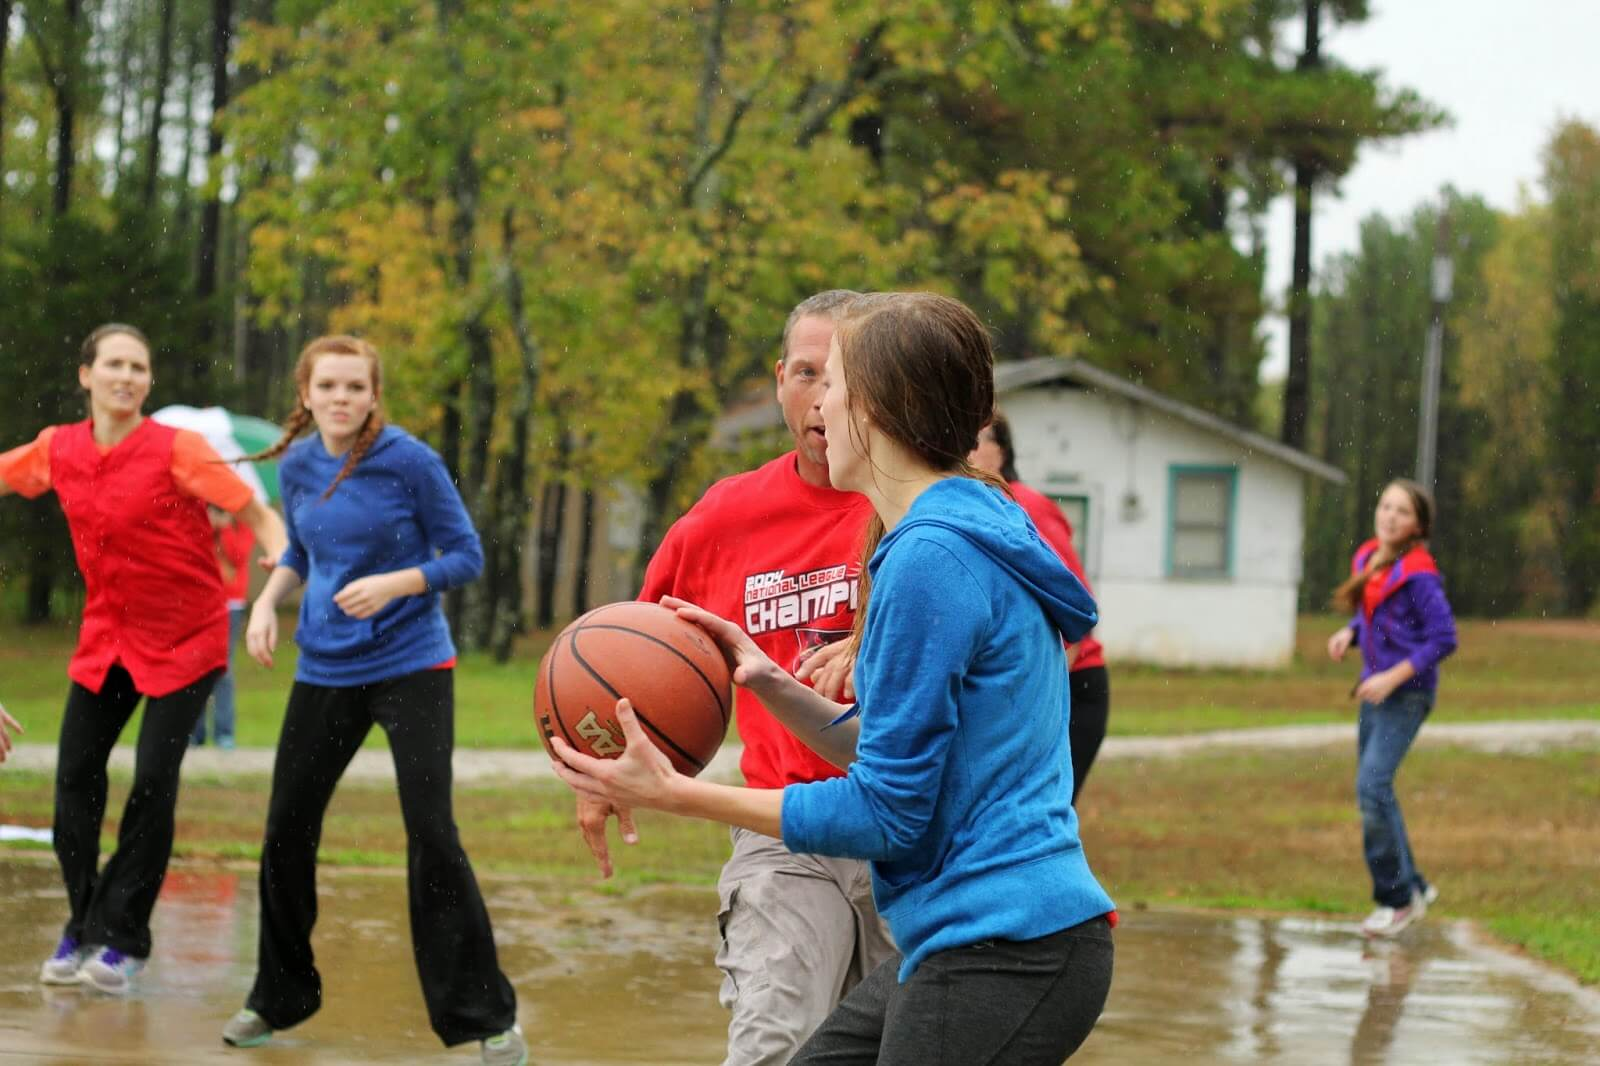 playing backetball in the rain